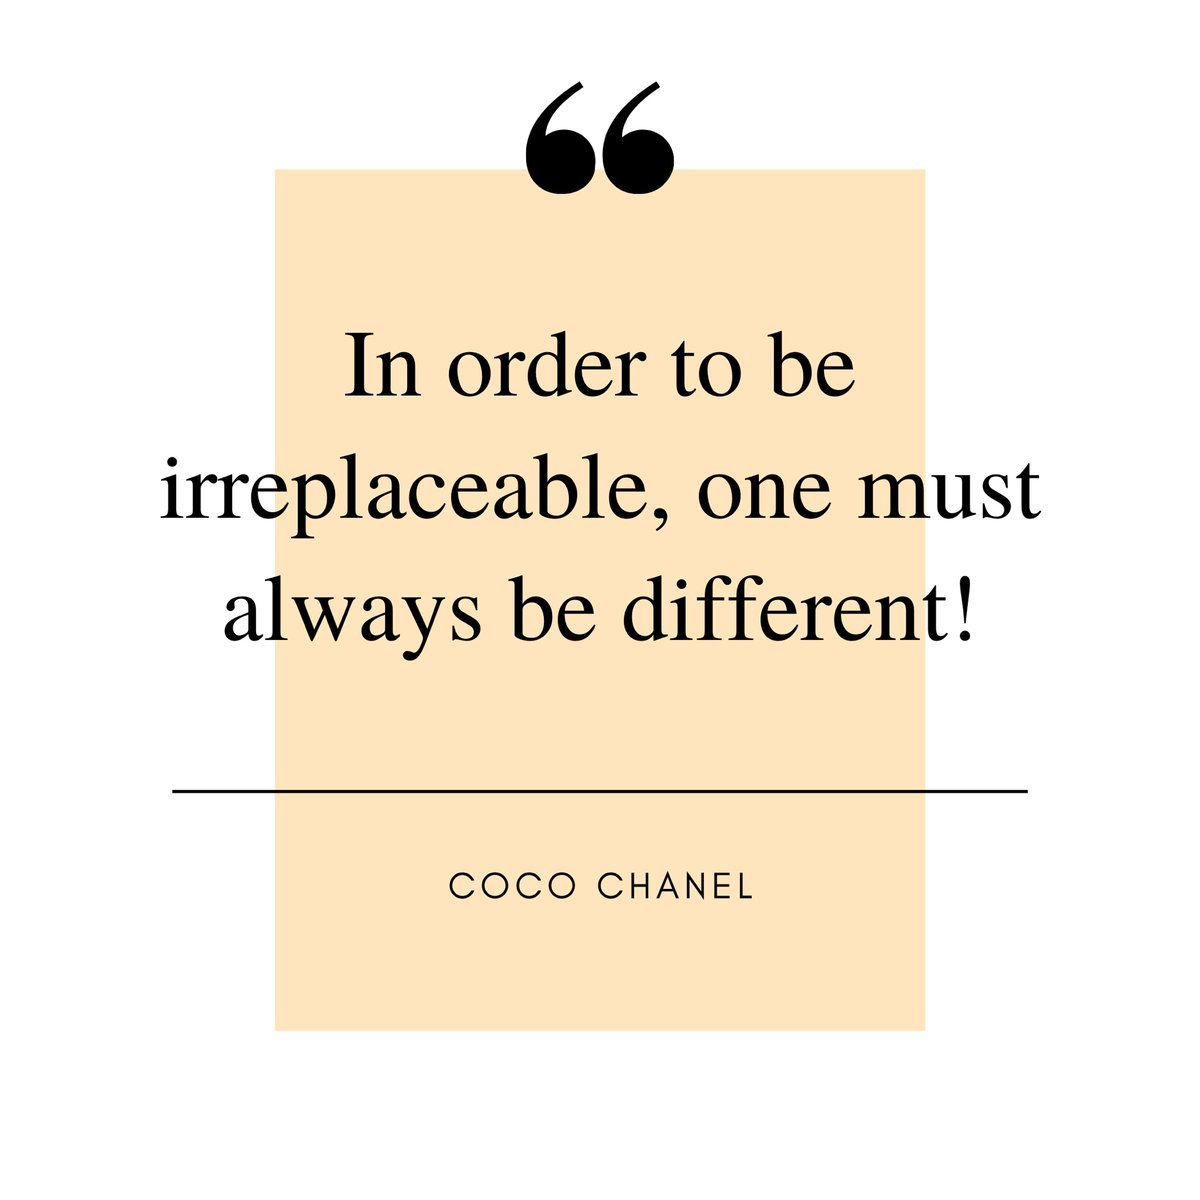 #cocochanel  She may have done some things wrong but she did the right thing by bringing #unique designs to the fashion industry. What she said about being #irreplacepale, makes sense when you discover your uniqueness, too!  #discoveryouruniqueness #selfrealization #eyeopening https://t.co/URxUpx1kHZ